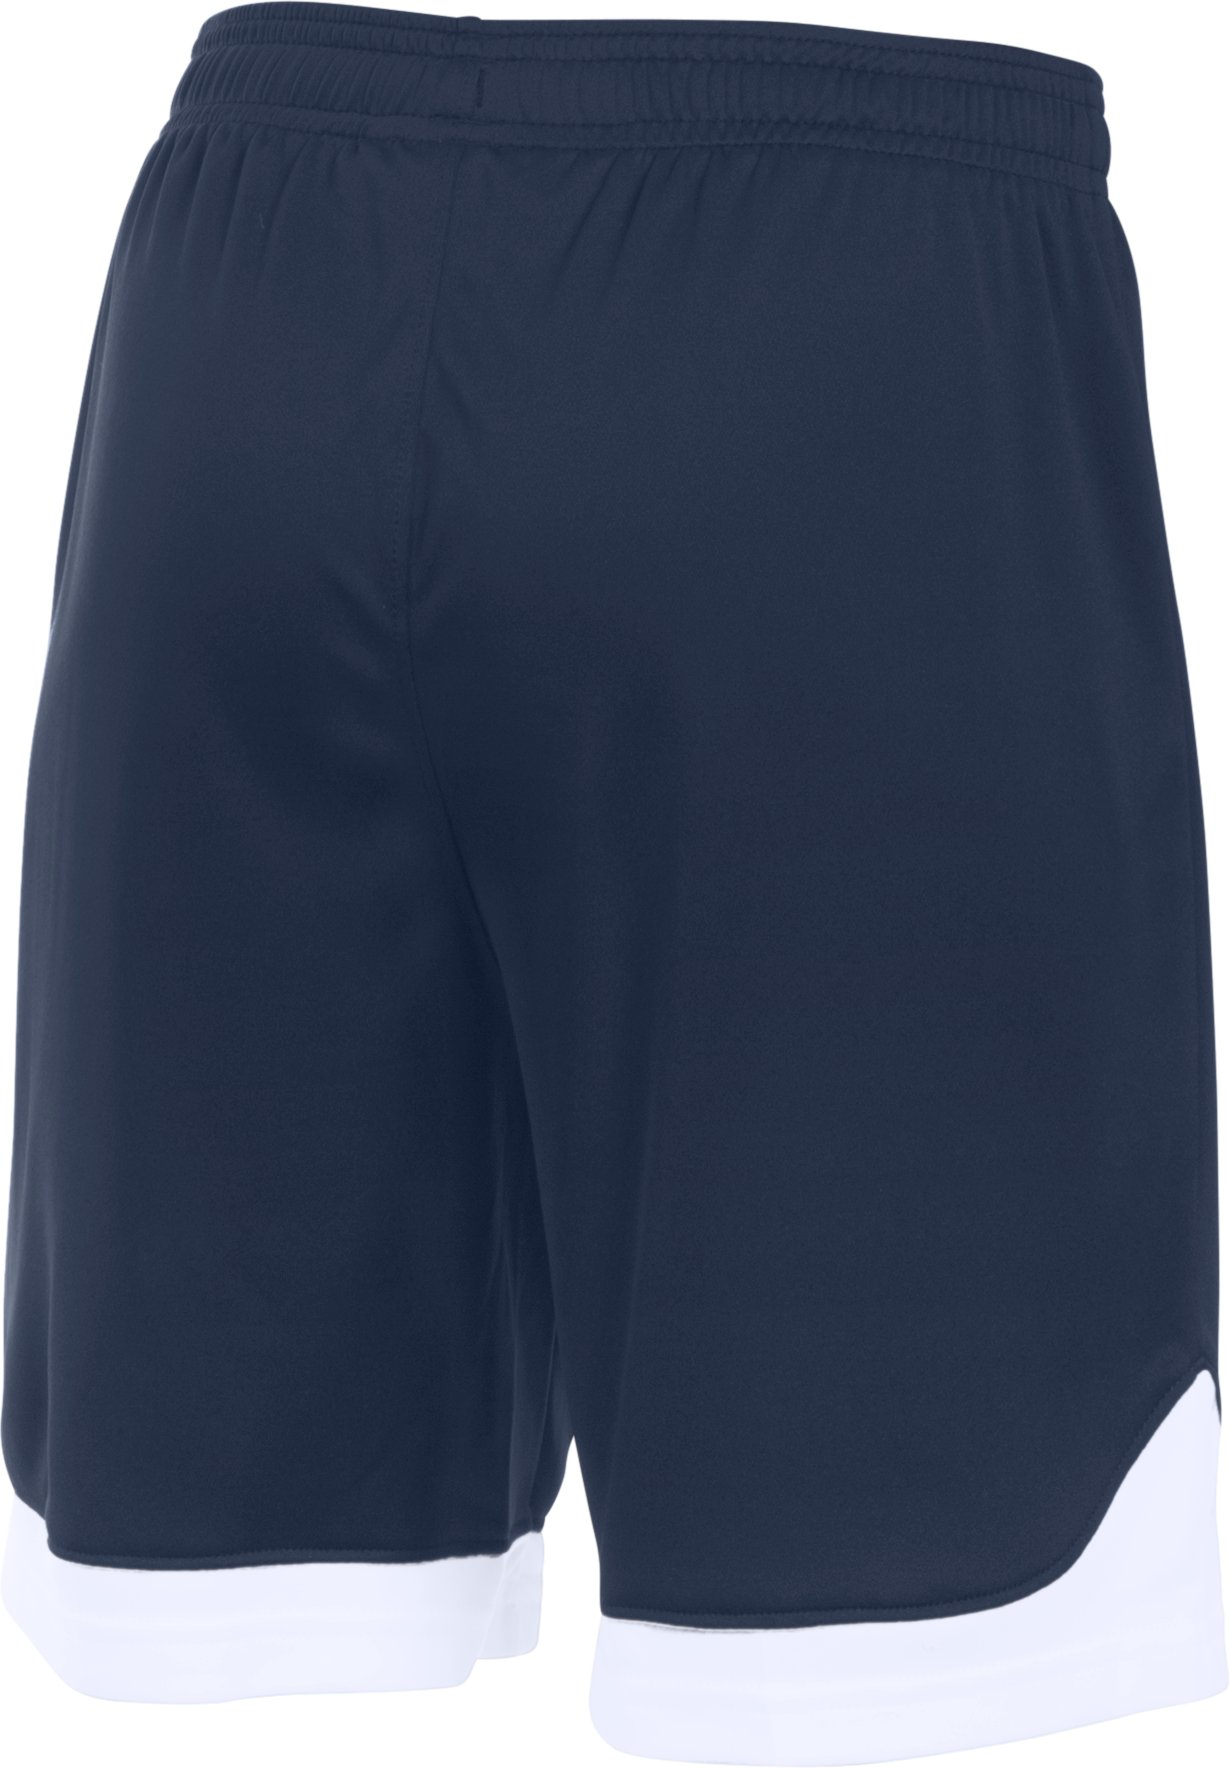 Boys' UA Maquina Shorts, Midnight Navy, undefined